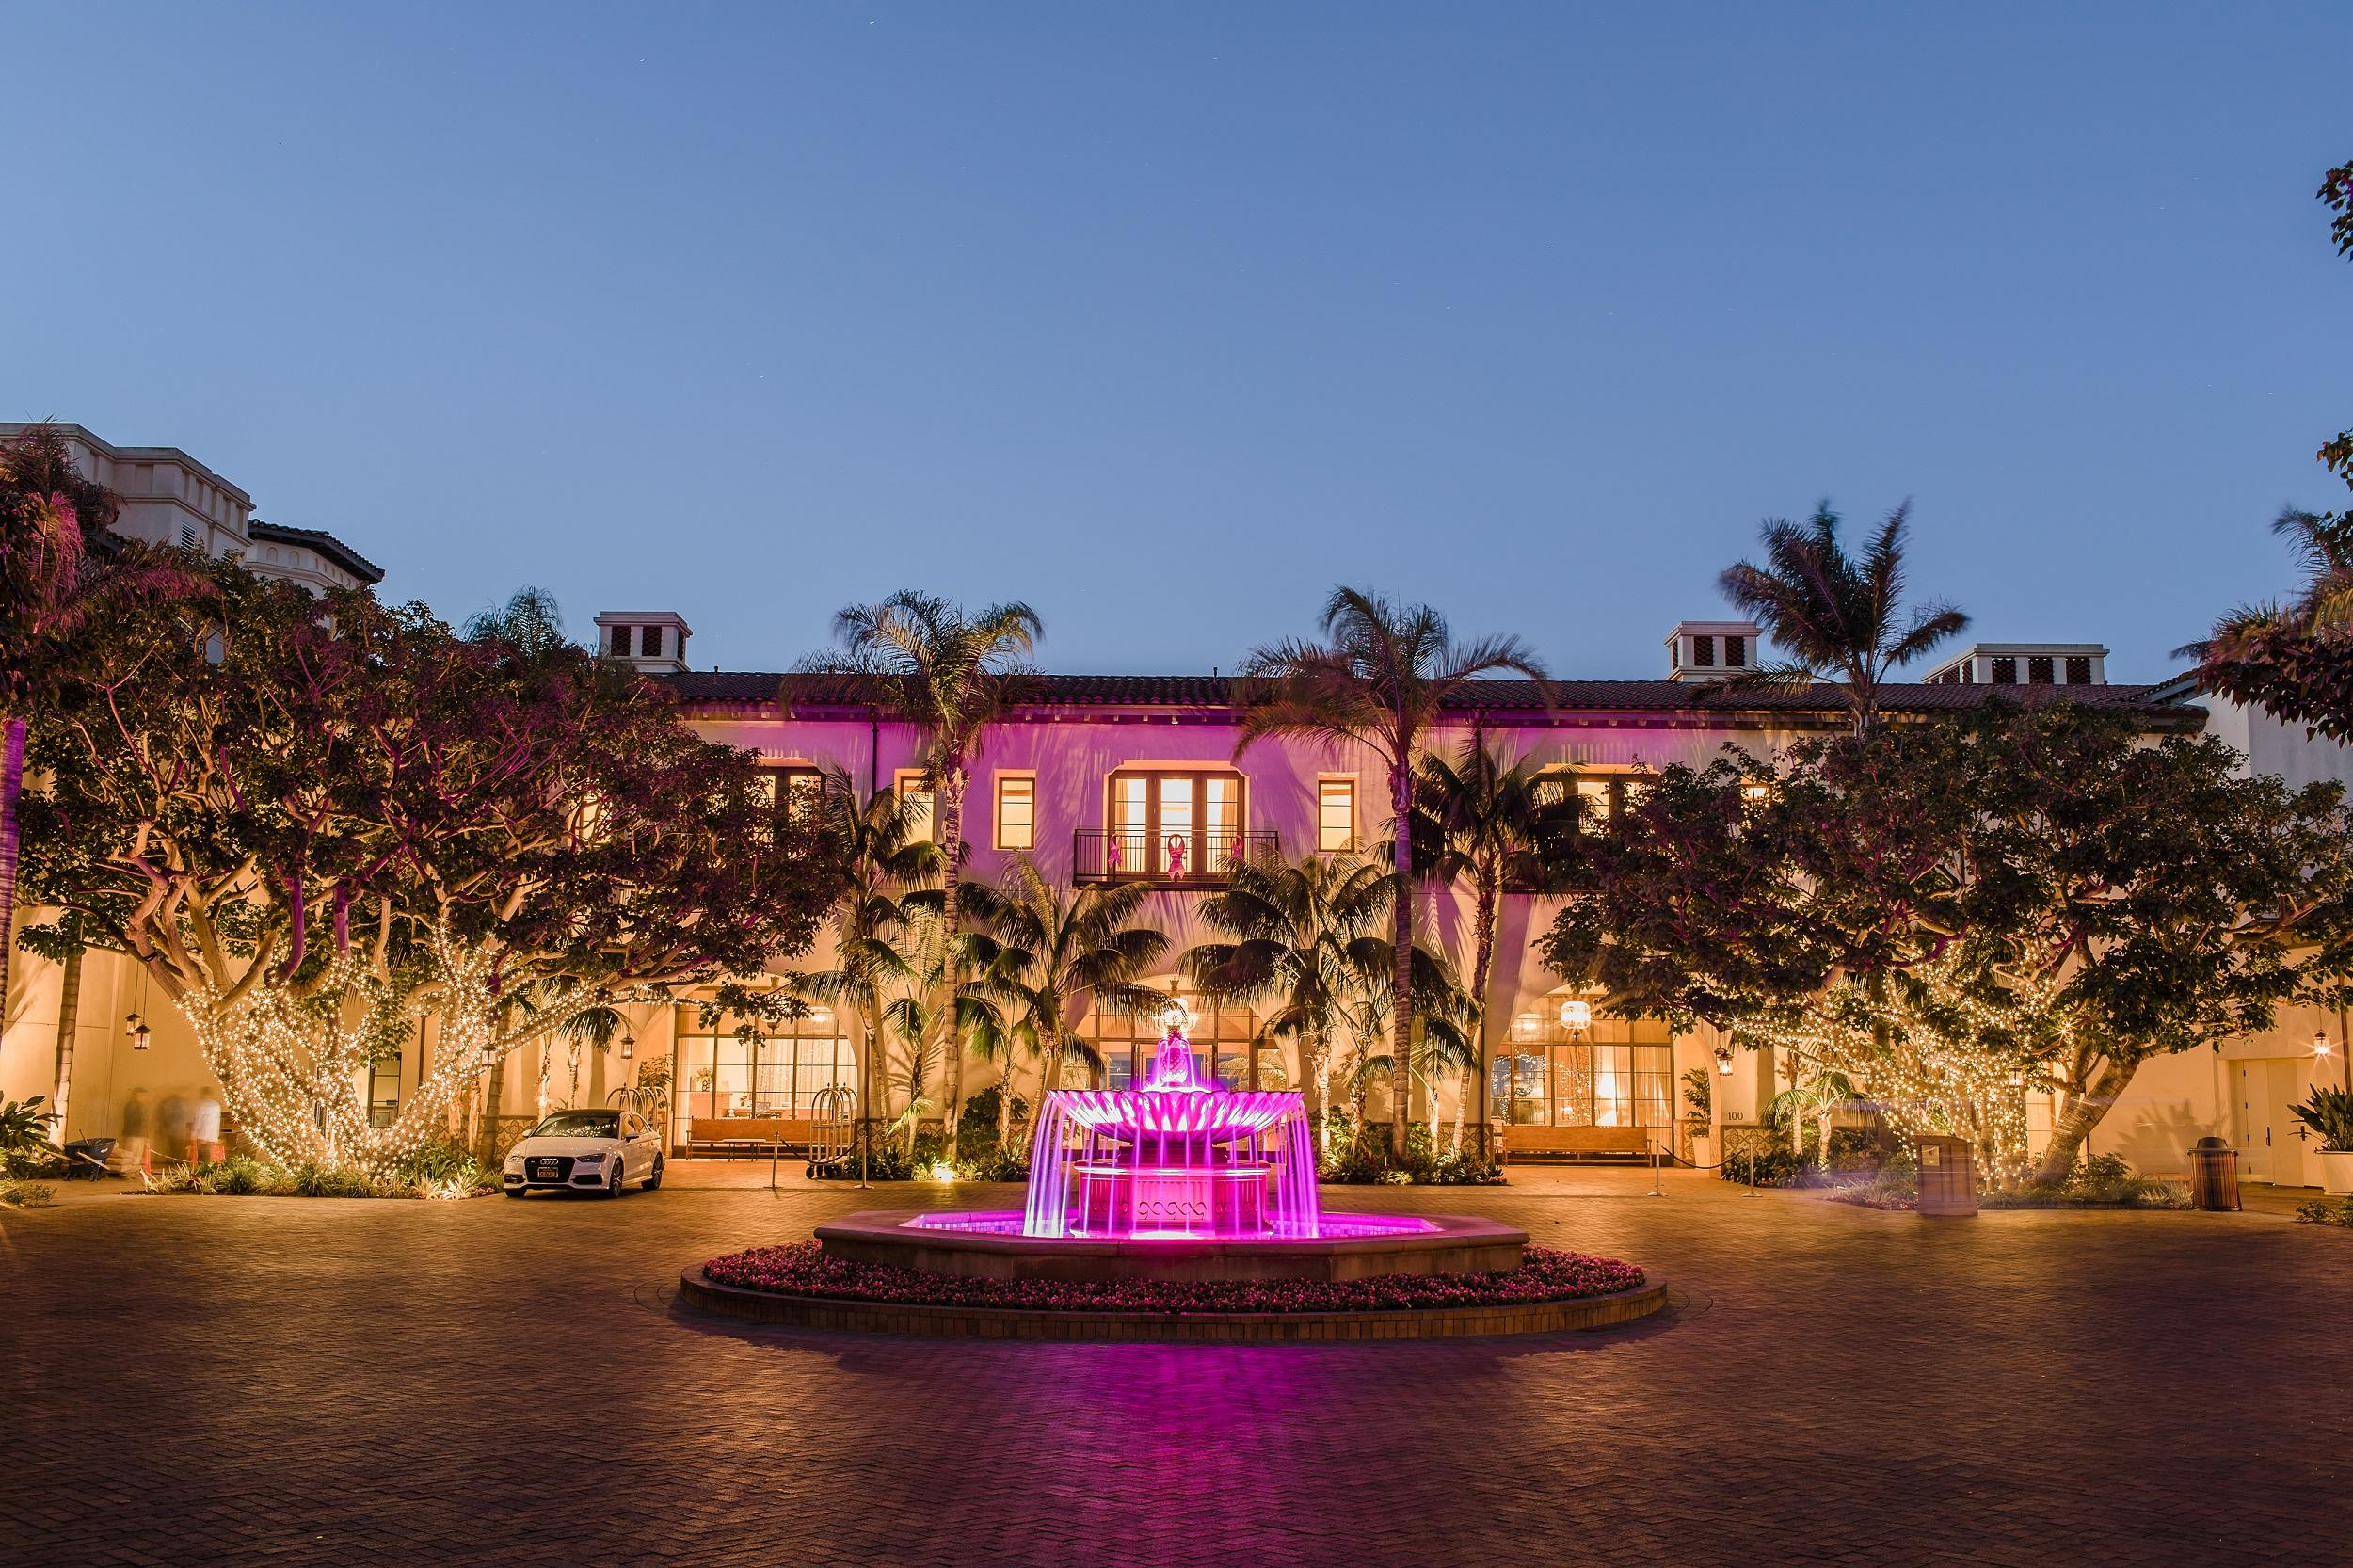 Terranea Turns Pink in October in honor of Breast Cancer Awareness Month